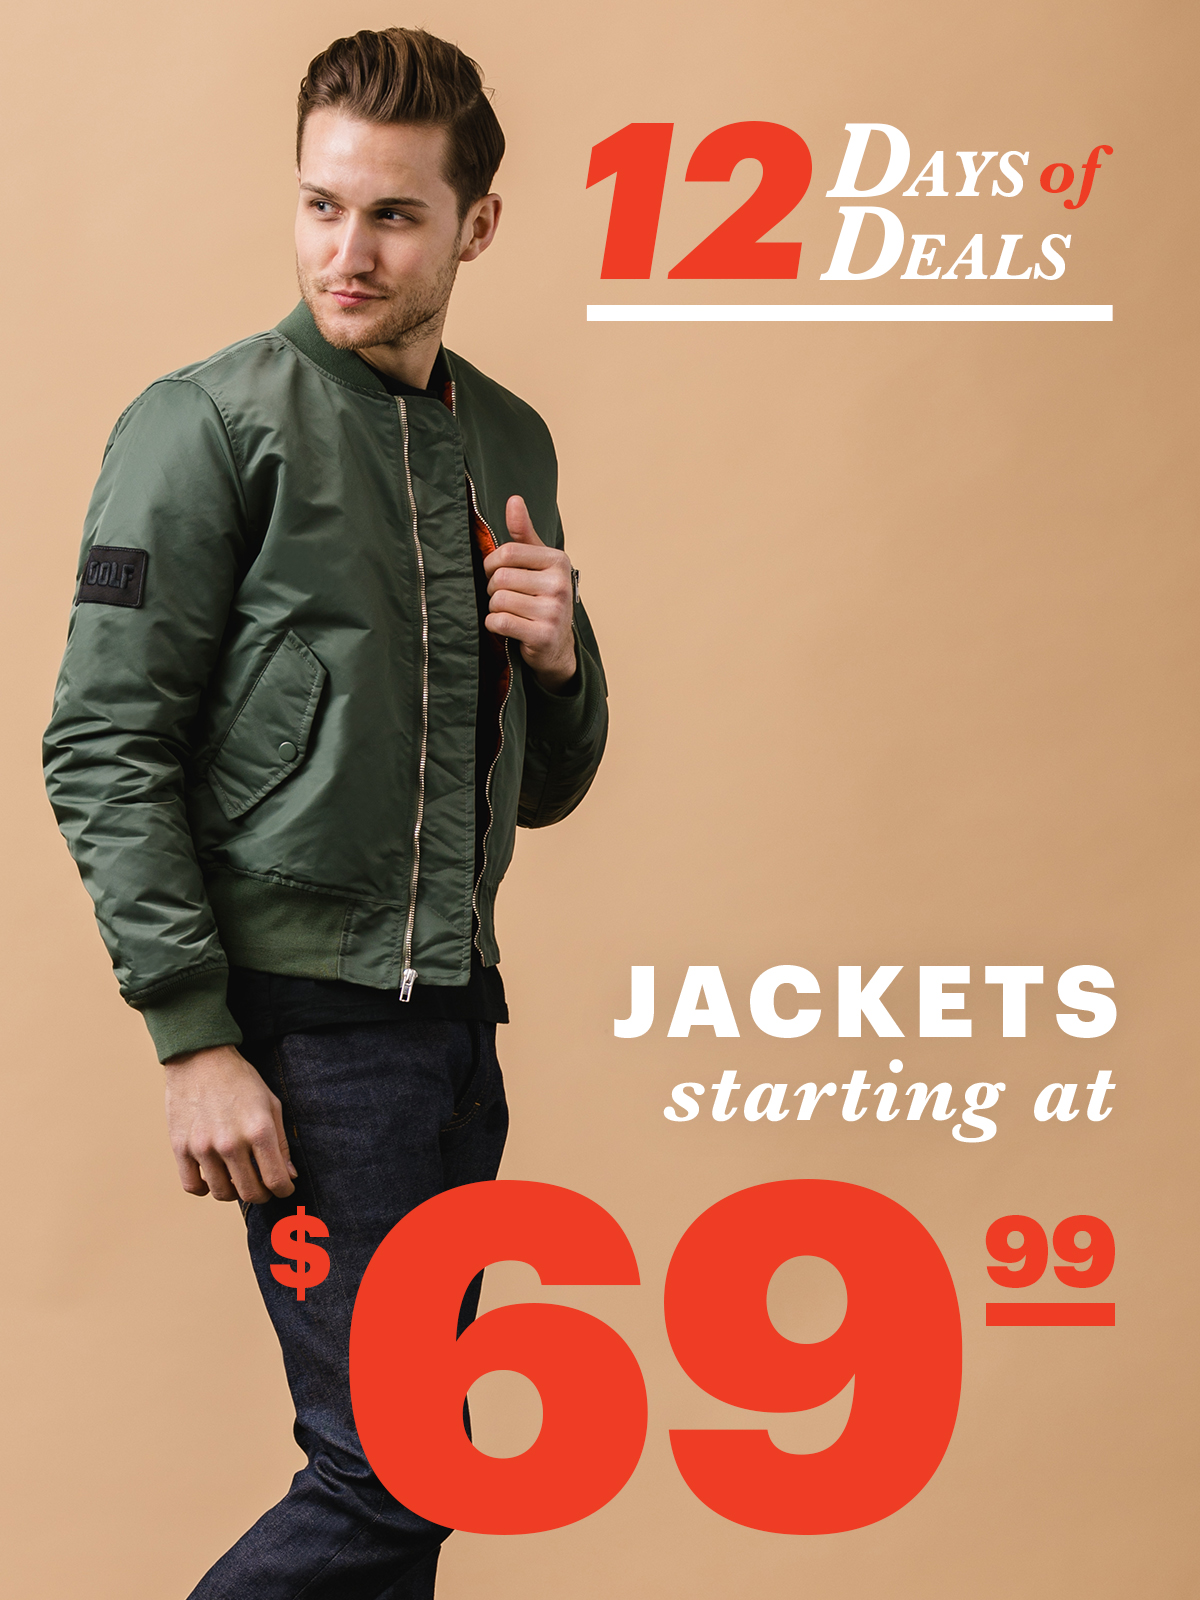 12 Days Of Deals: Day 4 Jackets Starting at $69.99